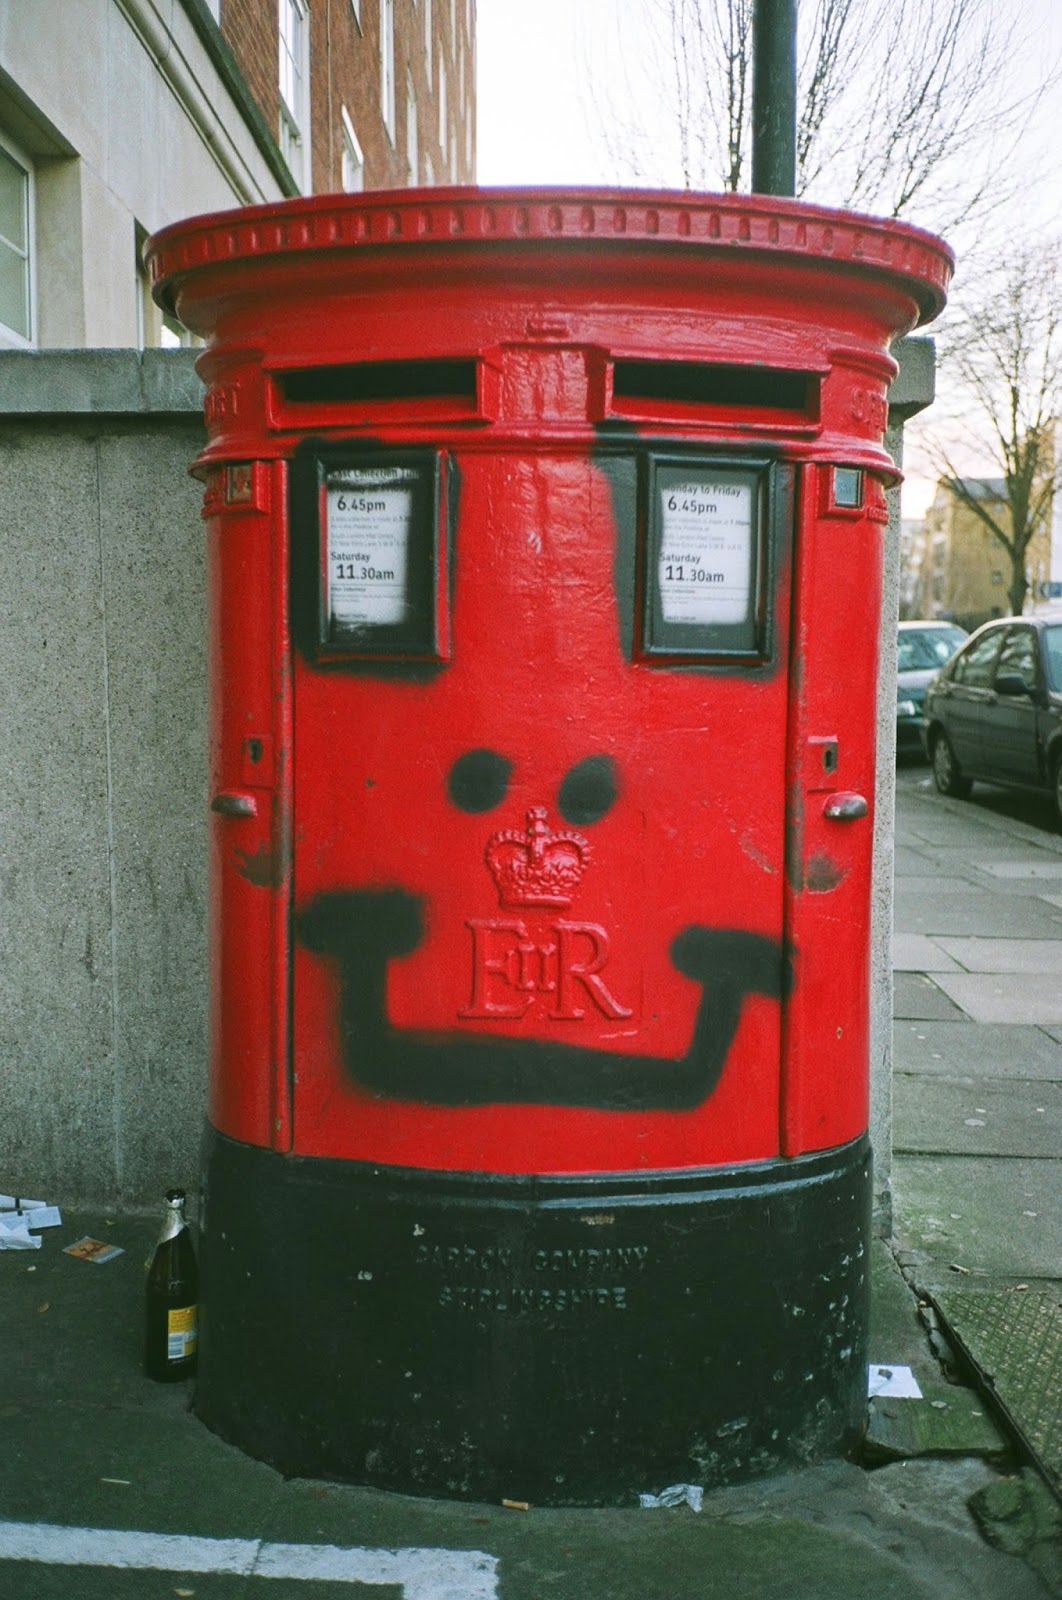 ROYAL MAIL, PRIVATISATION, POST BOXES, GPO, POSTAL DELIVERY, GRAFITTI, PIMLICO, LONDON, DOLPHIN SQUARE, © VAC 100 DAYS 4 MILLION CONVERSATIONS, 2015 GENERAL ELECTION